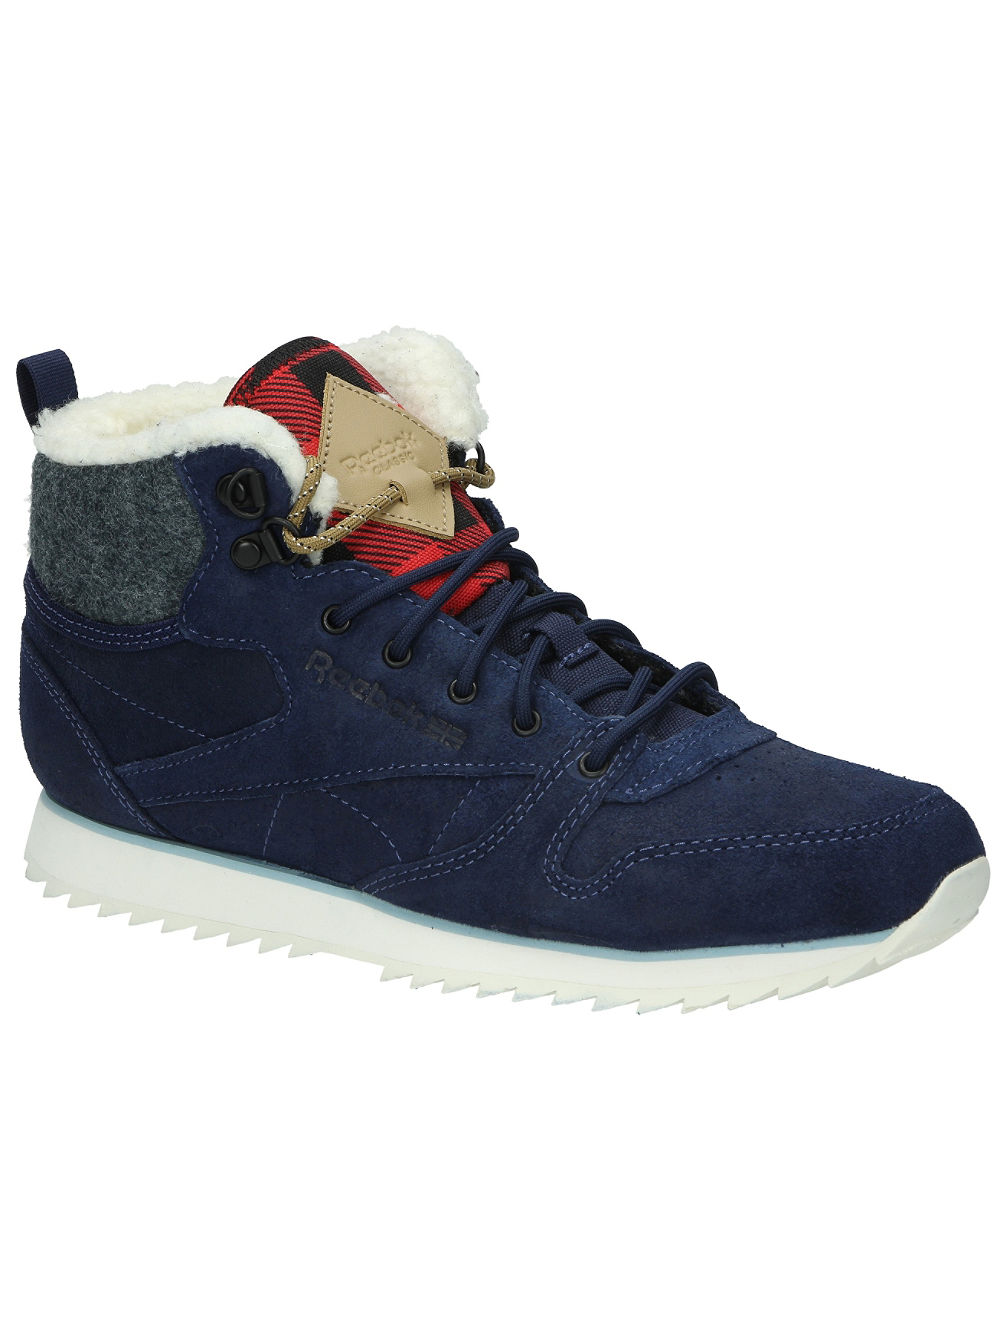 Buy Reebok Classic Leather Mid Outdoor Shoes Women online